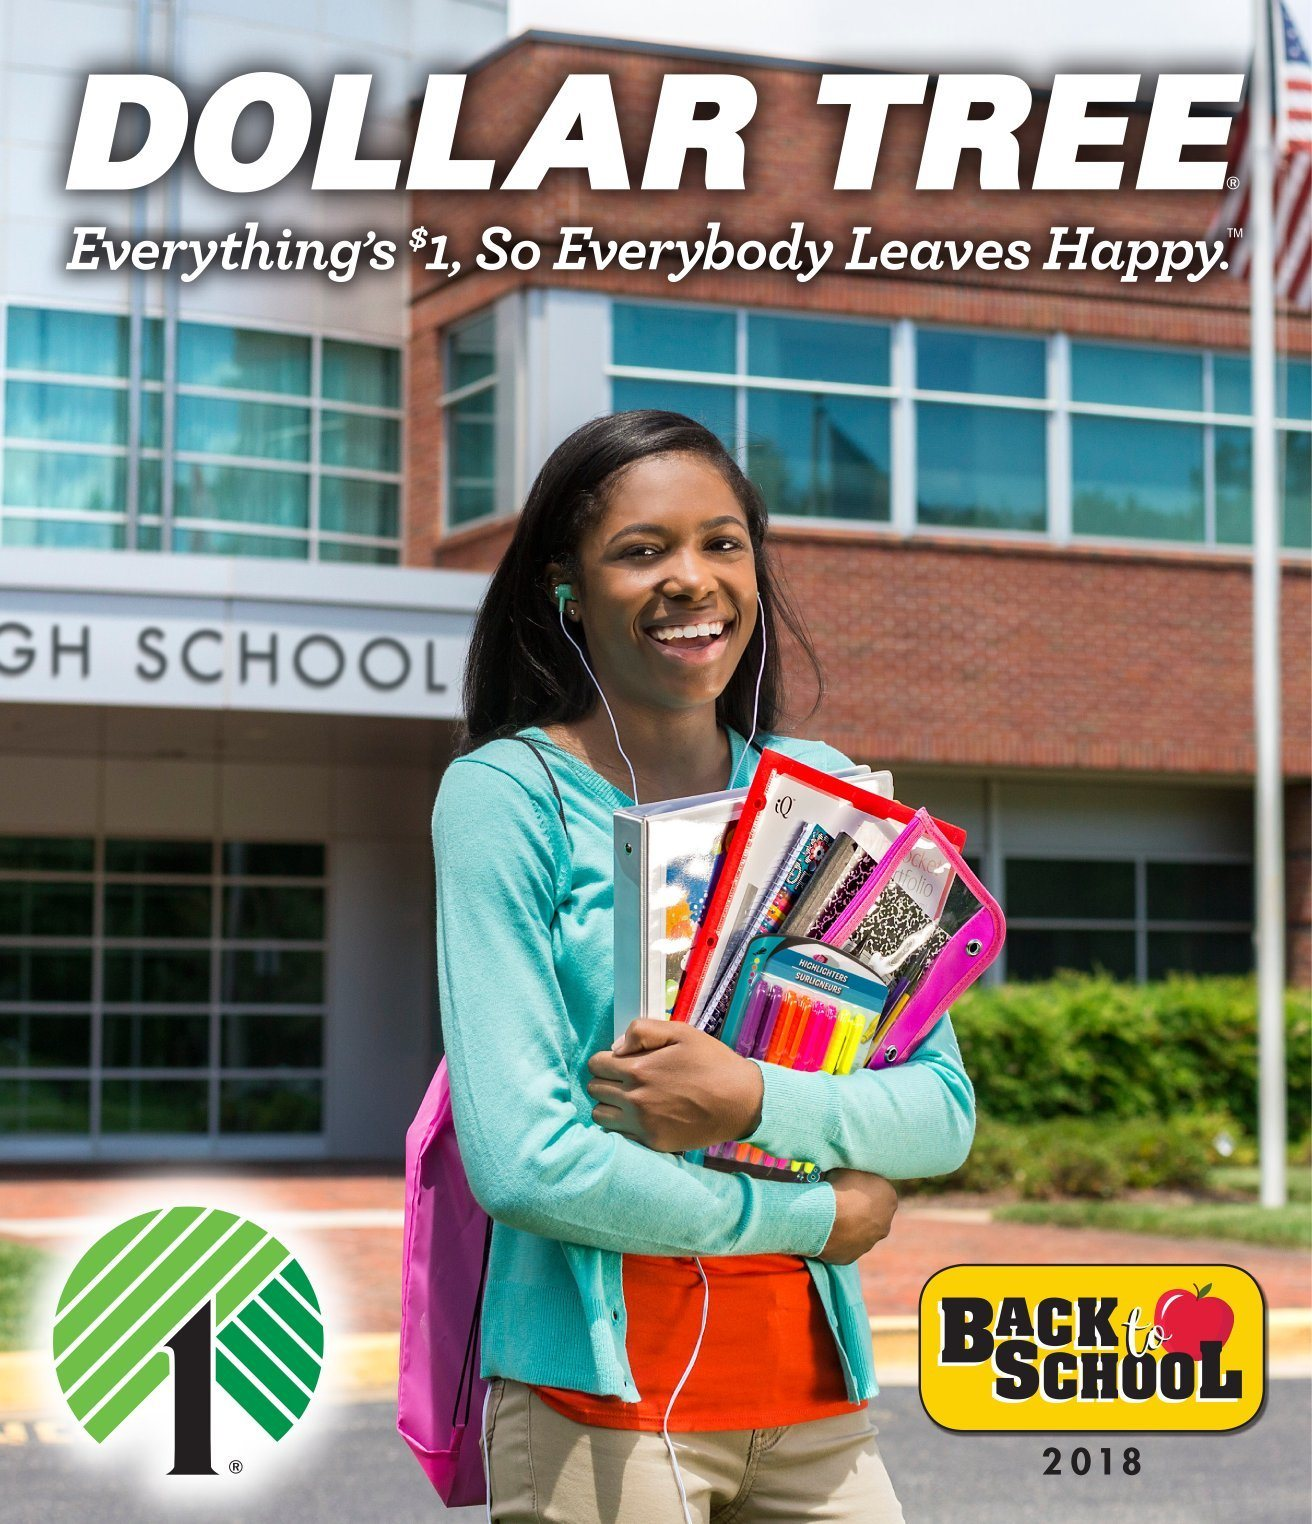 Dollar Tree Flyer  - 07.05.2018 - 08.31.2018. Page 1.